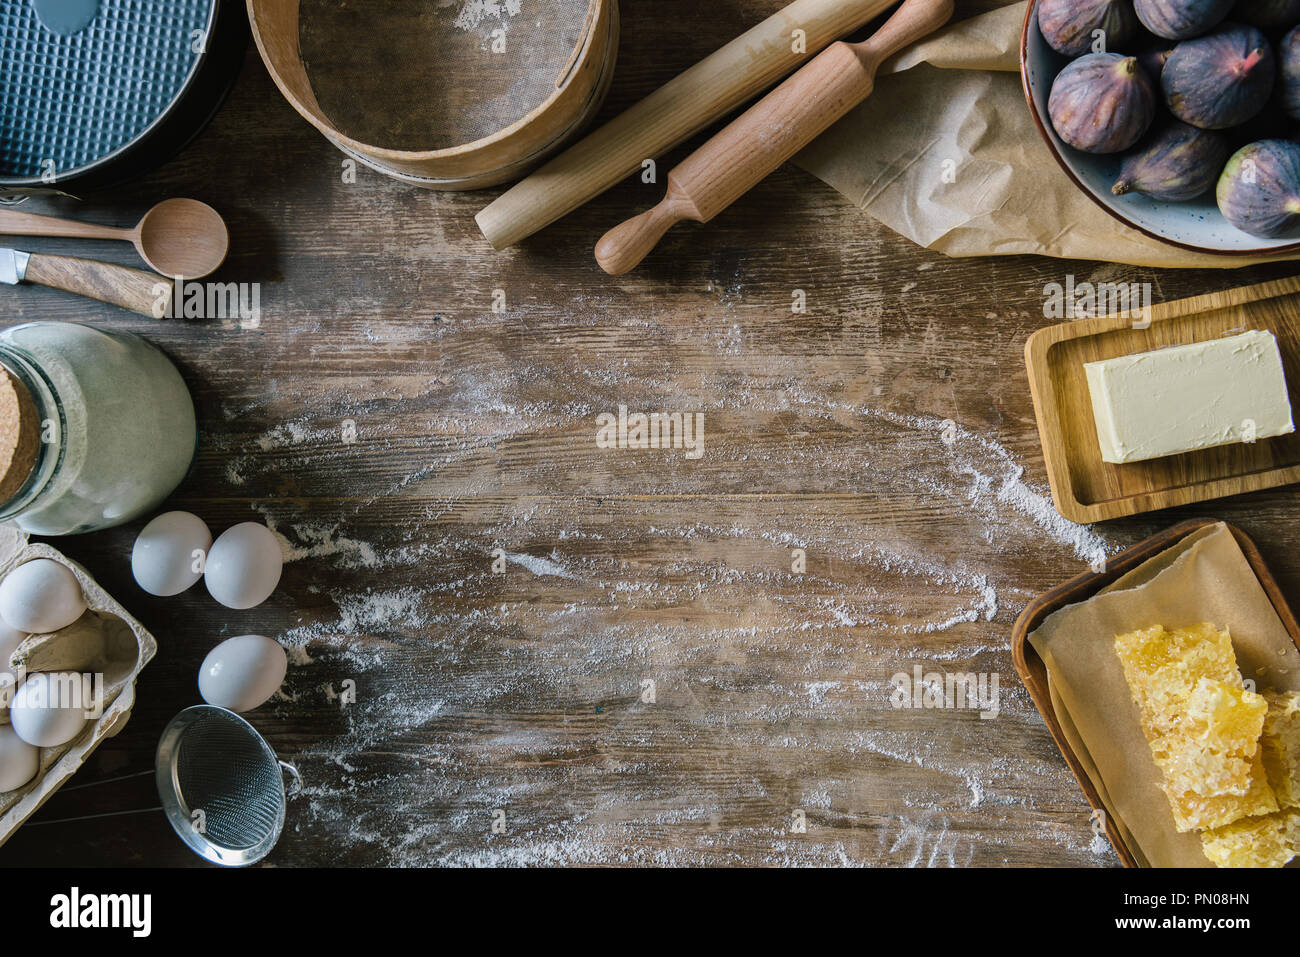 top view of messy wooden table with spilled flour and baking ingredients - Stock Image